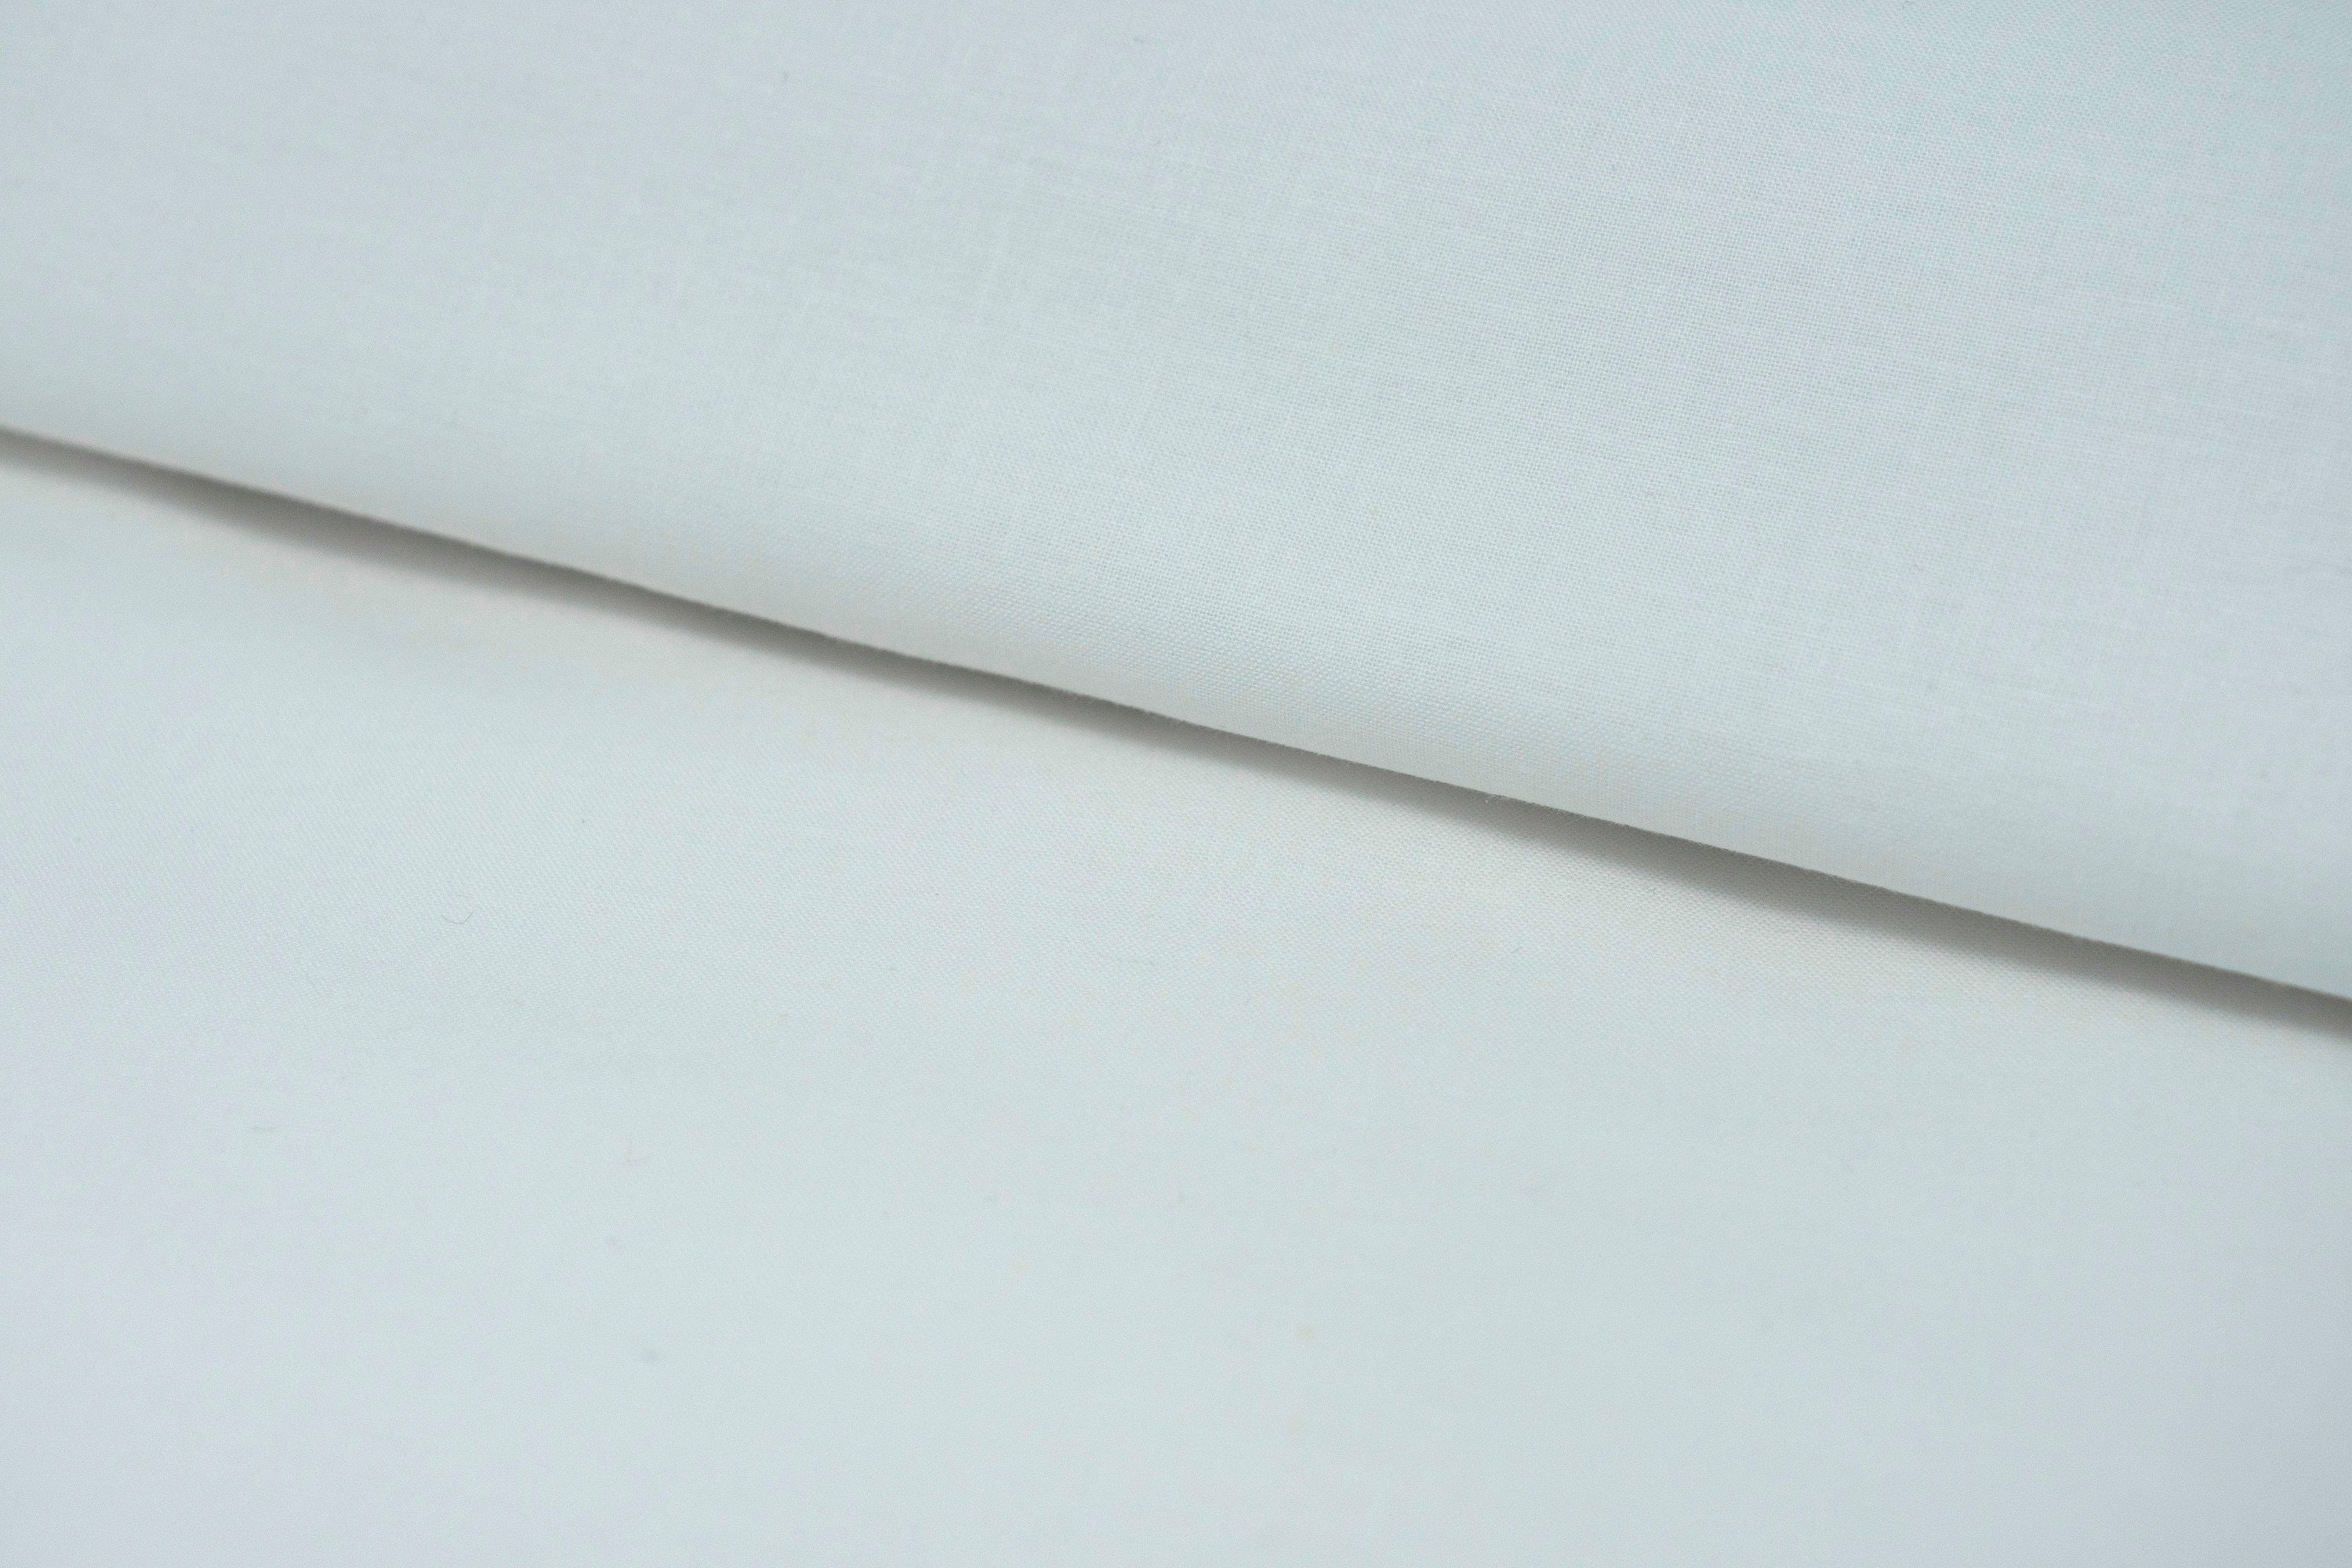 "100% Cotton 44/45"" Wide Solid Color Muslin, Bleached, White, by 2 Yards"